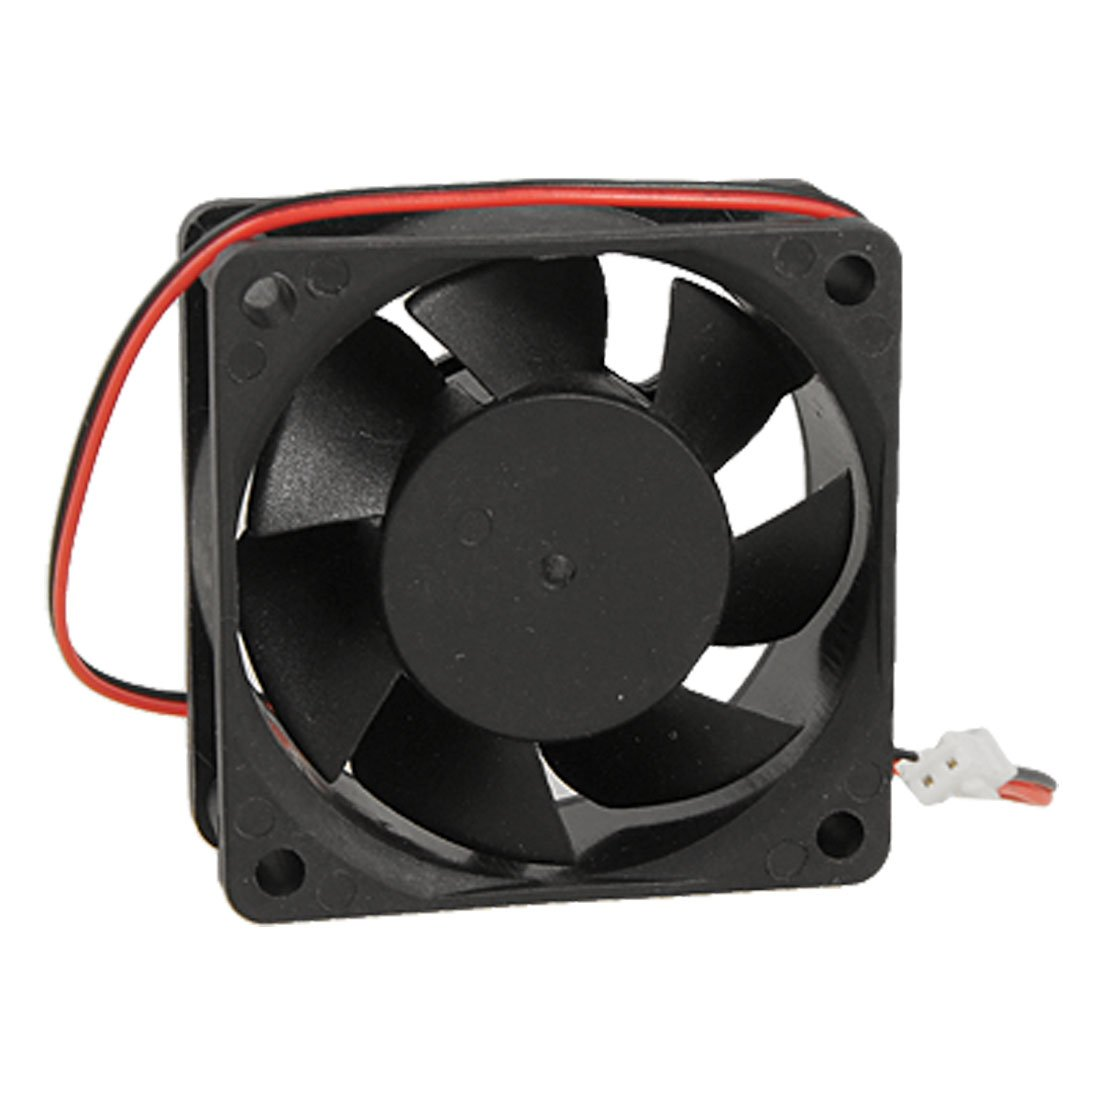 YOC Hot 60mm X 25mm DC 12V 0.25A 2Pin Cooling Fan For Computer CPU Cooler